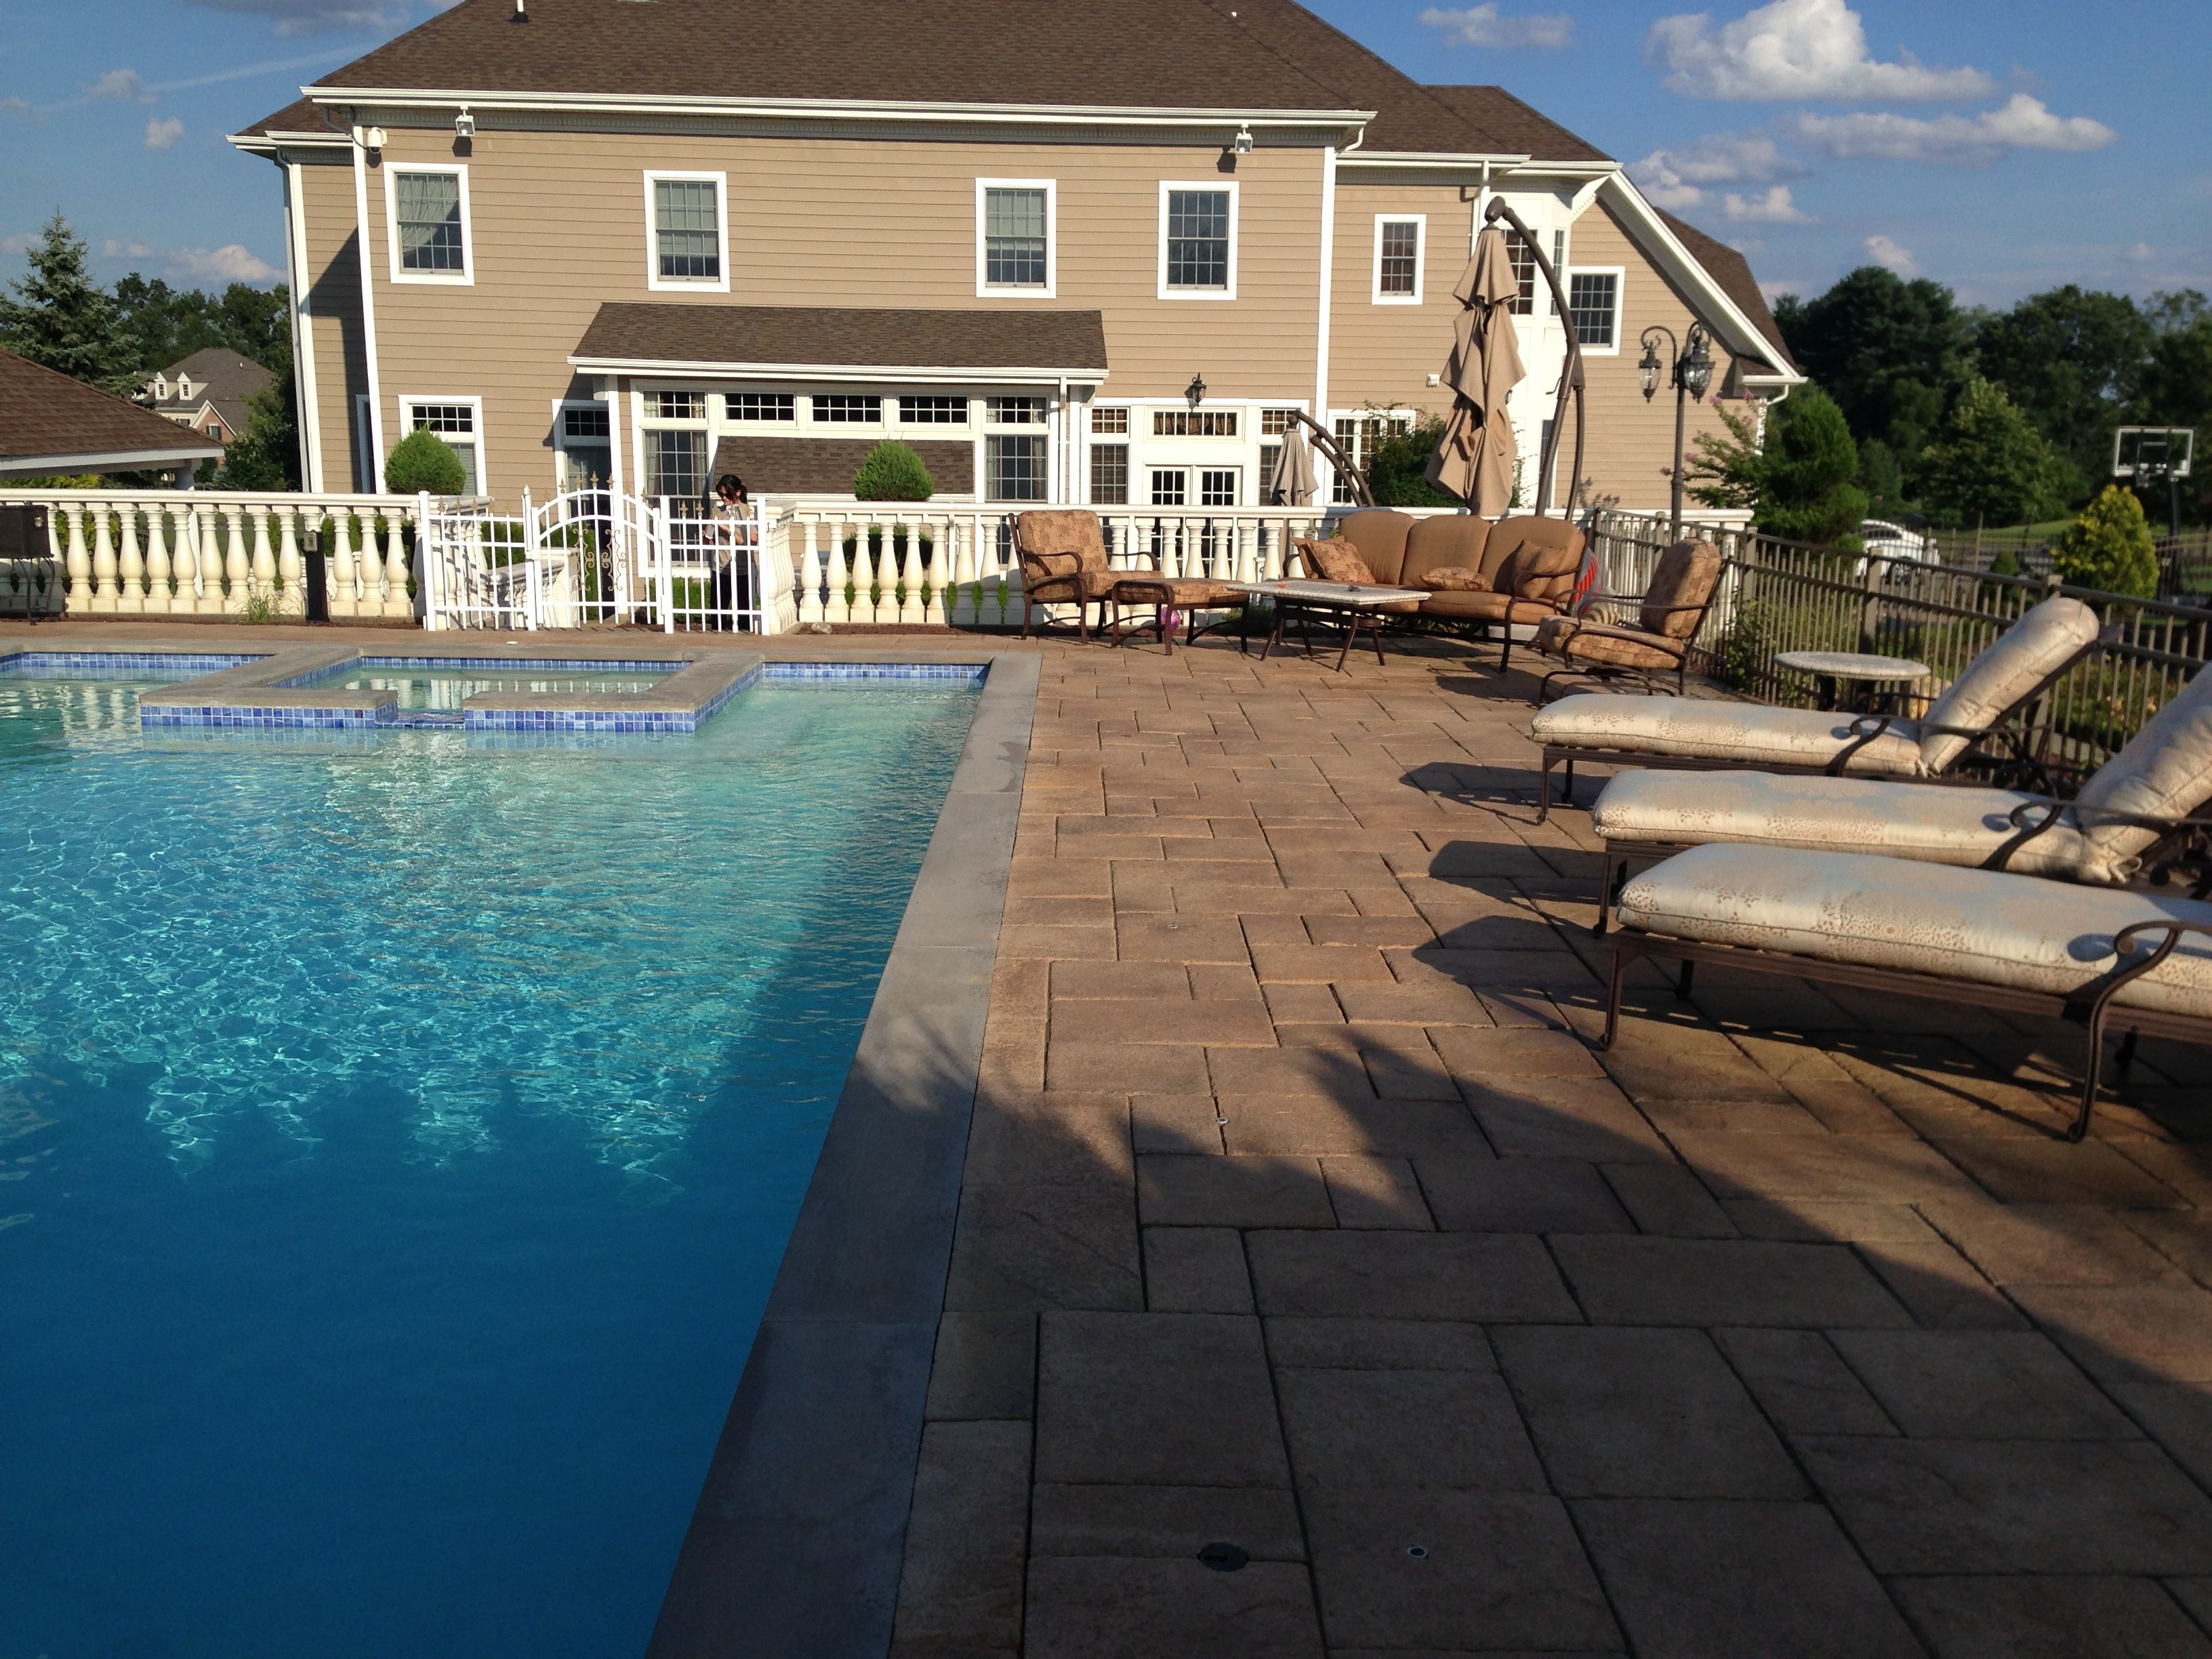 Patios & Hard Scapes